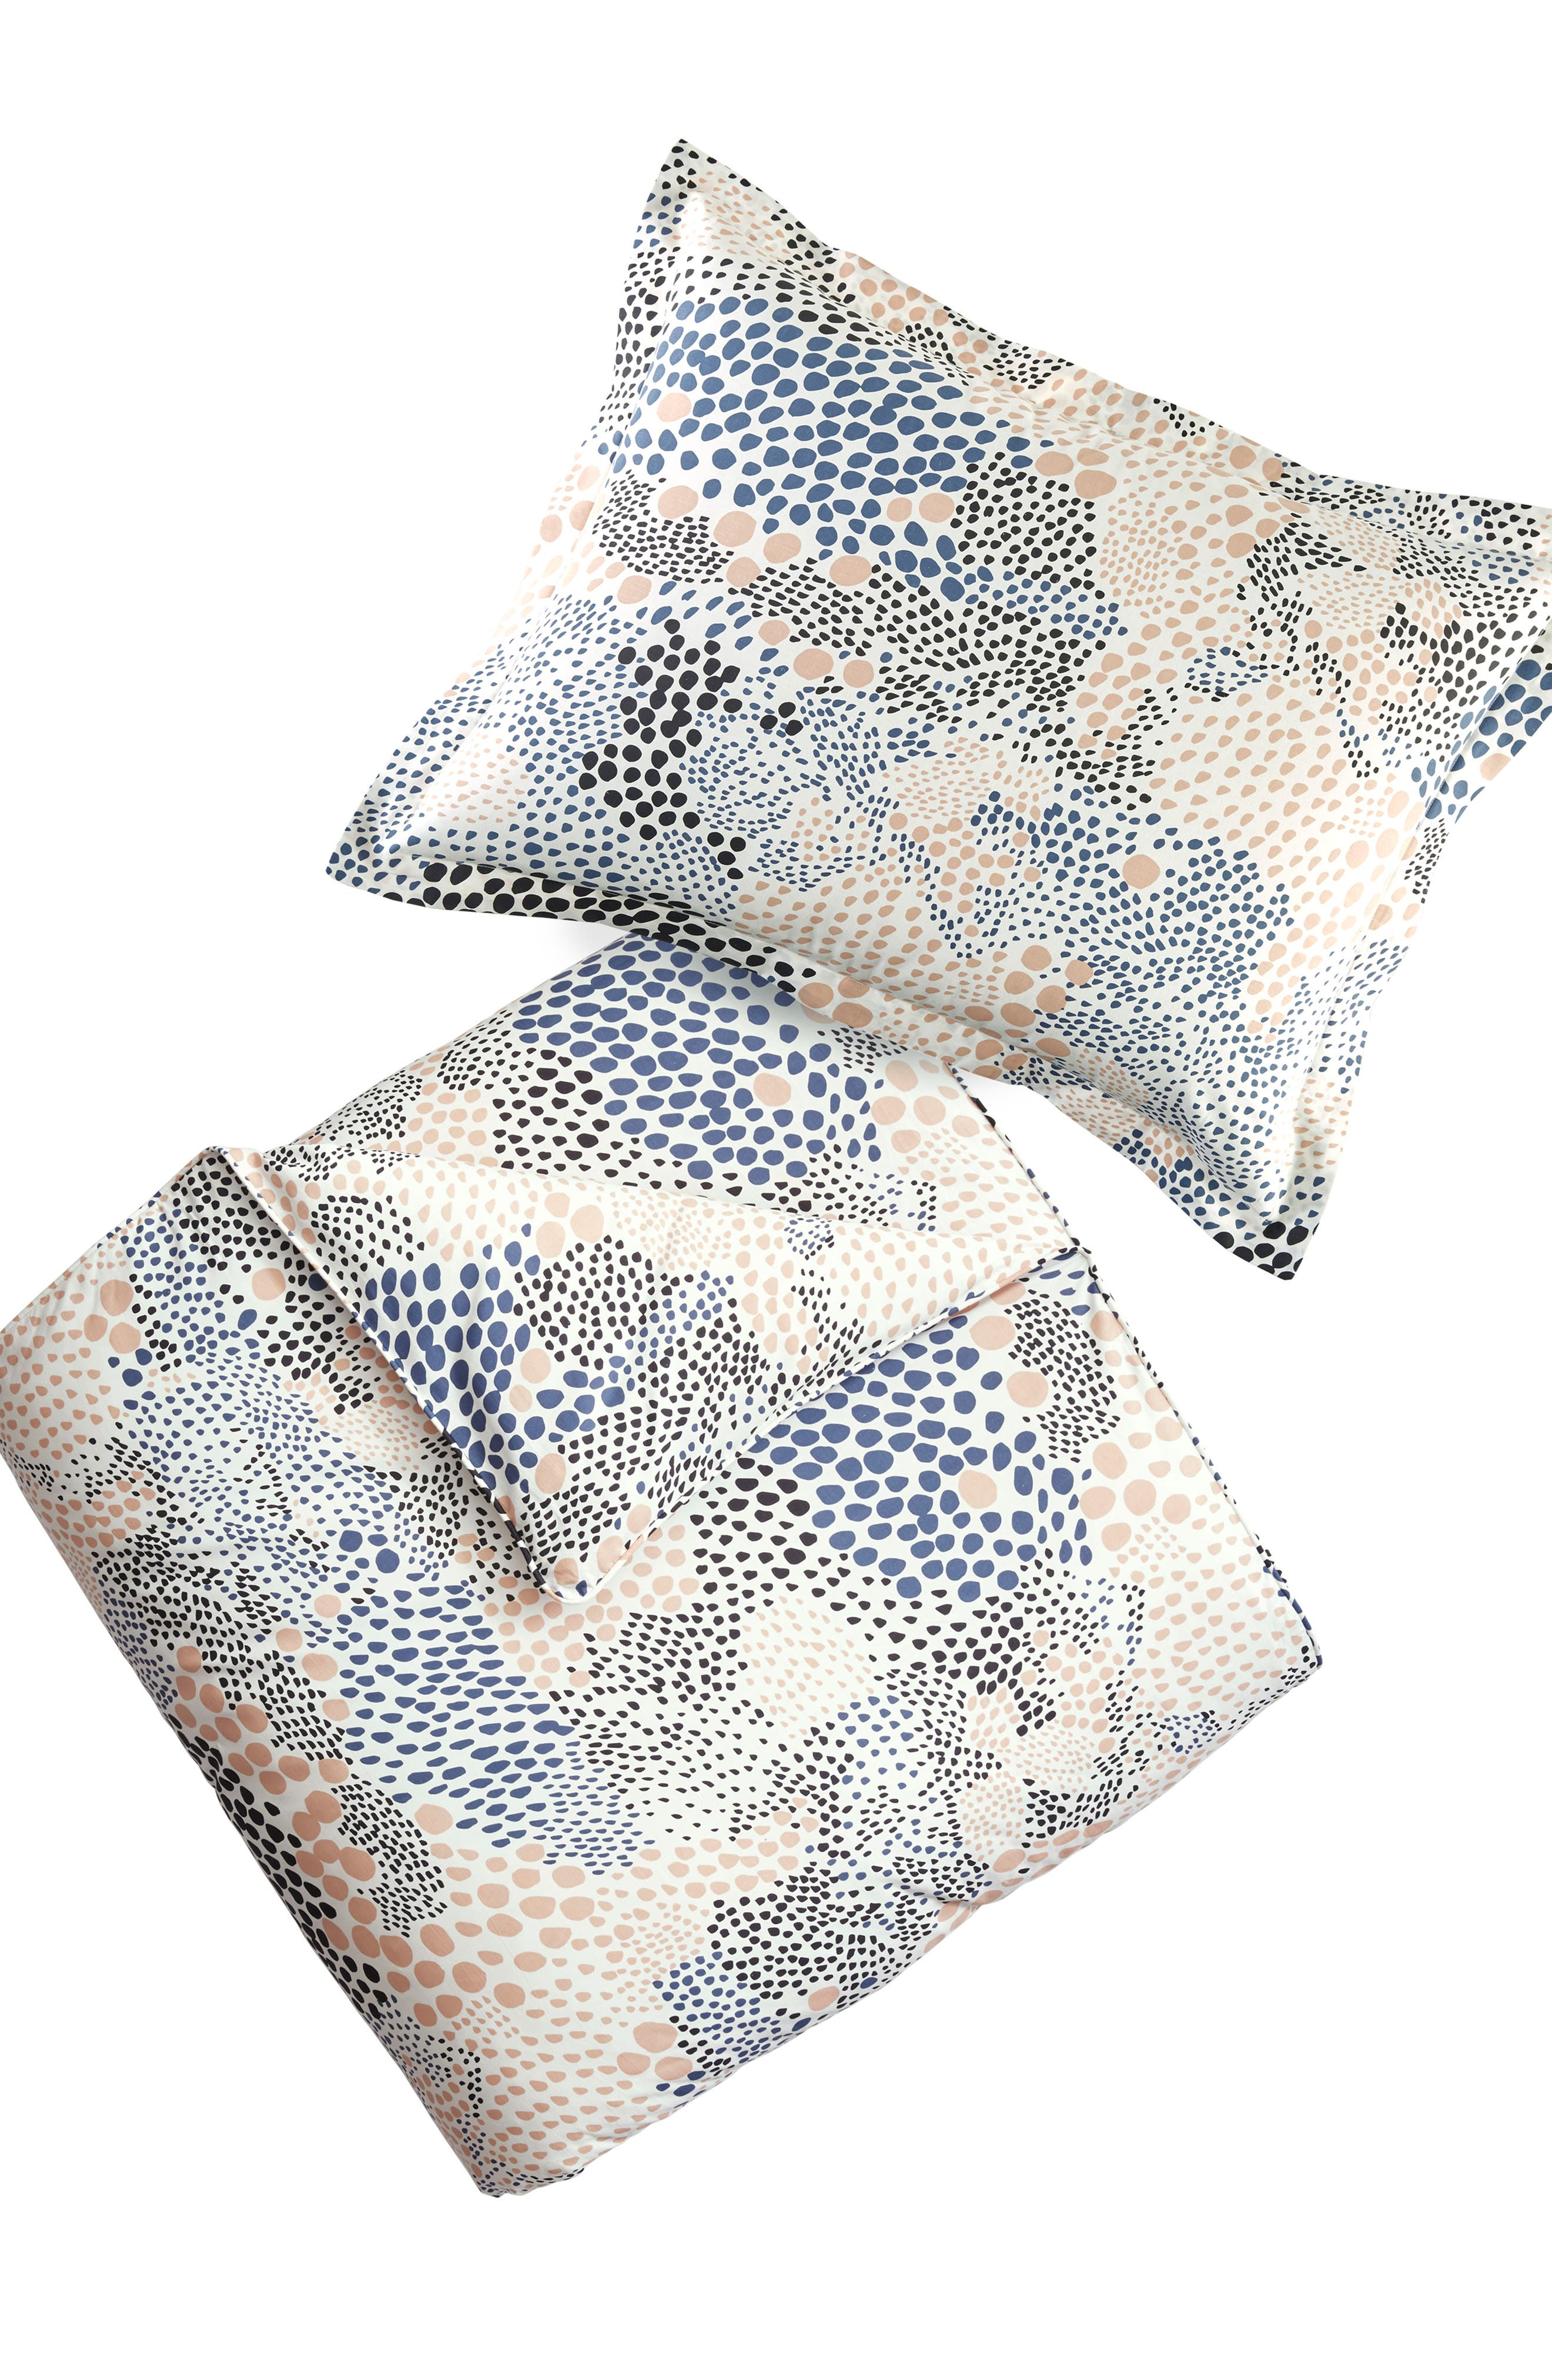 Pebble Noir Duvet Cover & Sham Set,                             Main thumbnail 1, color,                             142